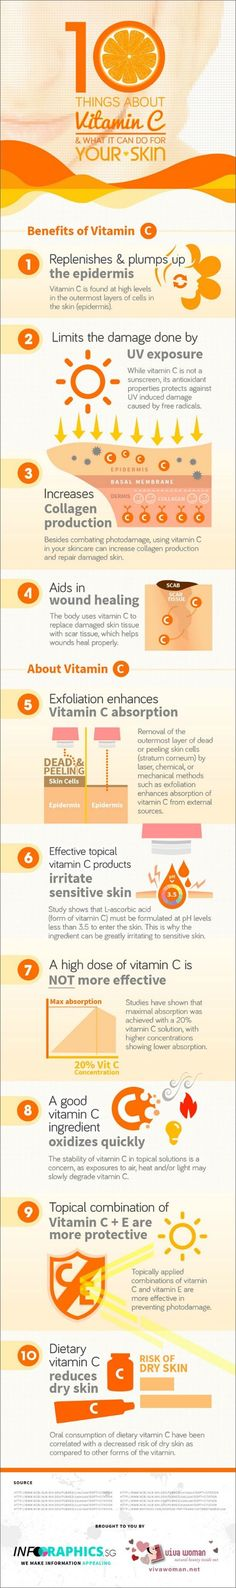 10 things about vitamin C for your skin. KUR SPA ( I swear by vitamin C, if you can eat an orange everyday or anything strong w vitamin C , your skin will thank you -G ) Anti Aging Tips, Anti Aging Skin Care, Natural Skin Care, Natural Beauty, Vitamin C Pulver, Beauty Skin, Health And Beauty, Beauty Zone, Nutrition